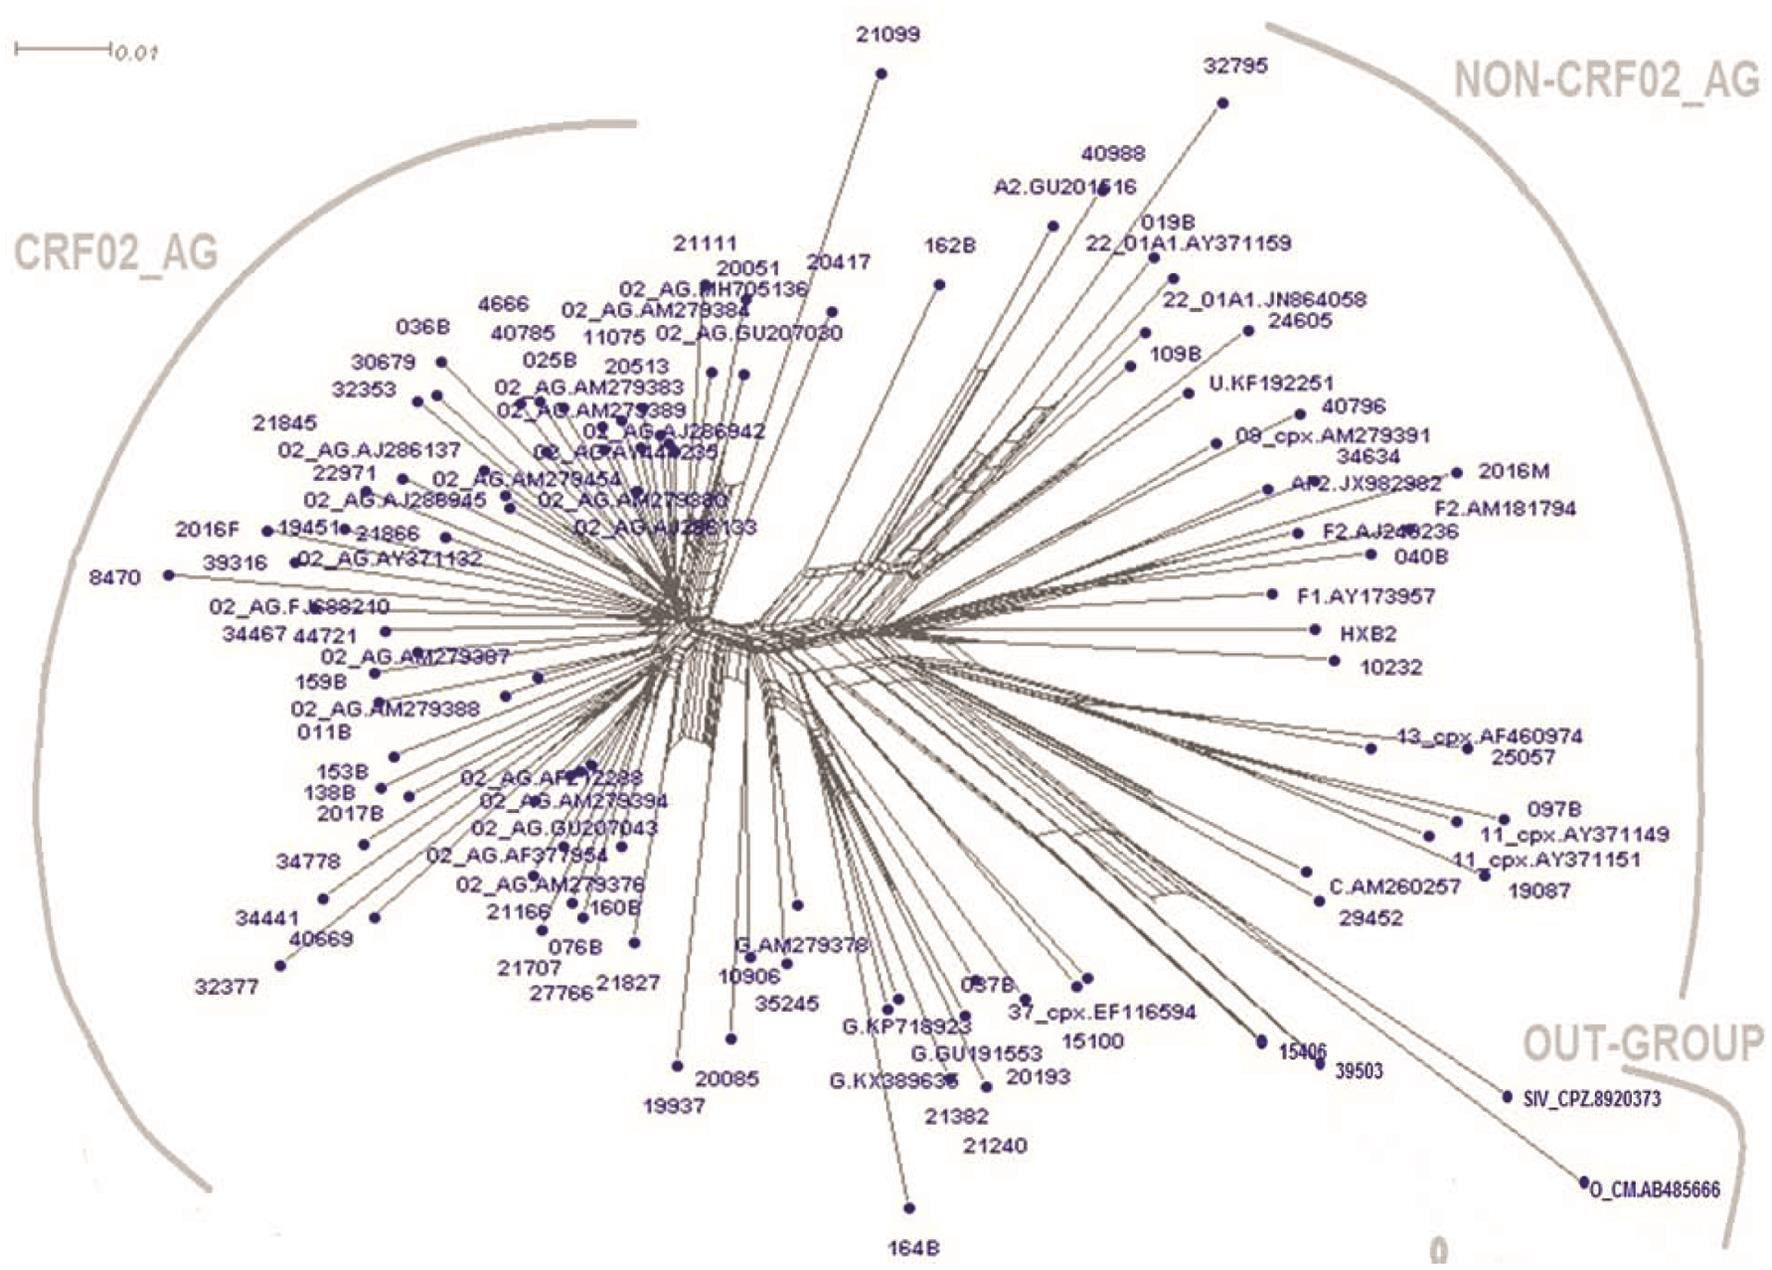 HIV-1 phylogenetic tree of the 63 perinatally infected participants.